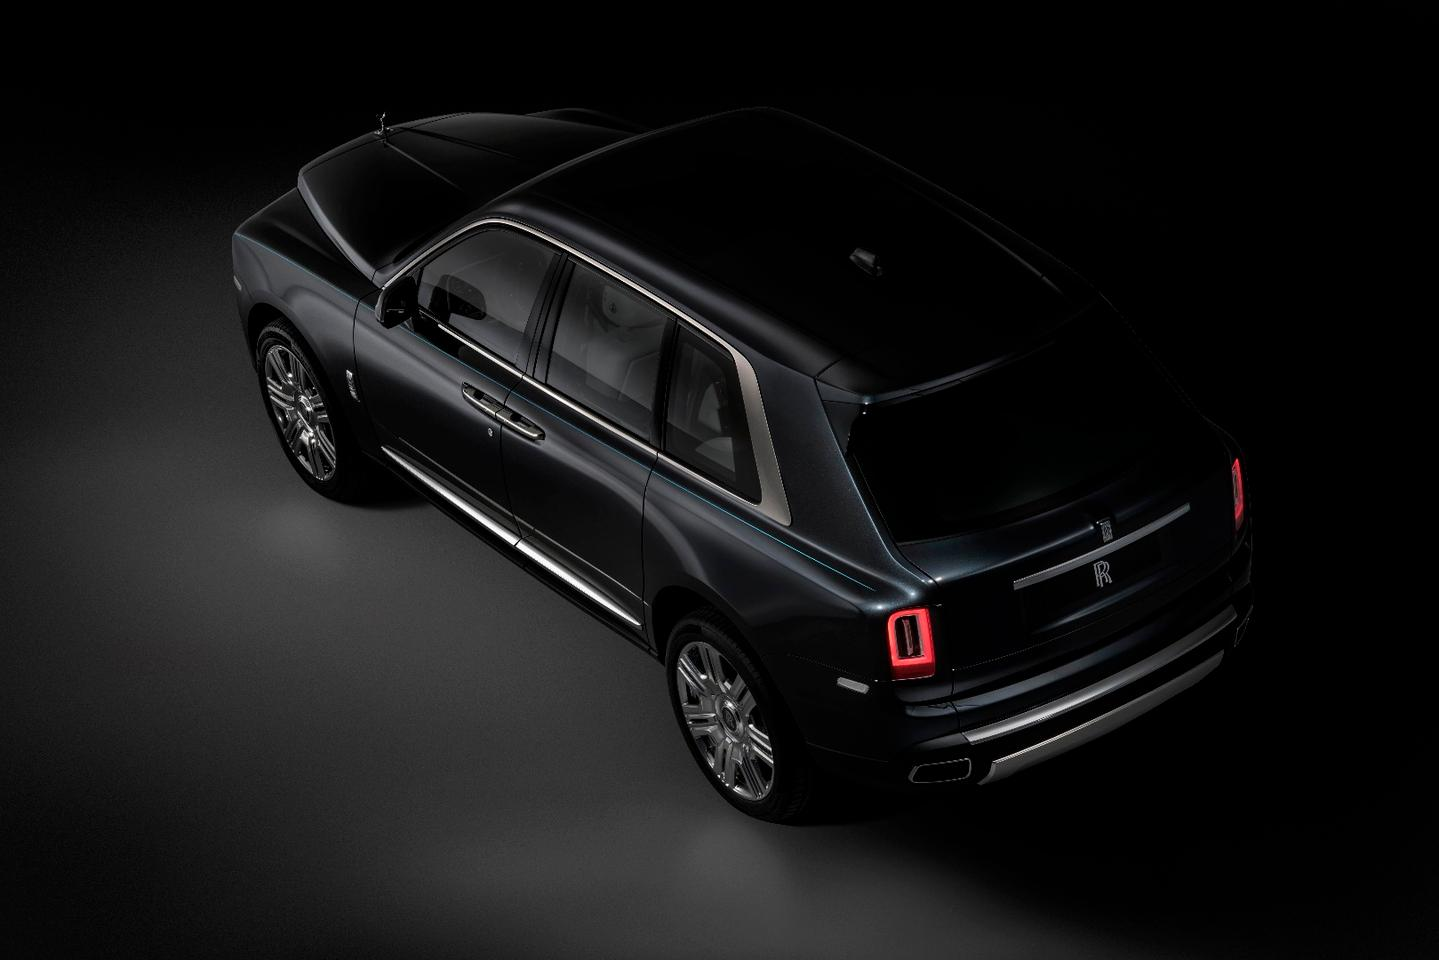 Rolls-Royce sought to redefine the shape of an SUV with a three-box design